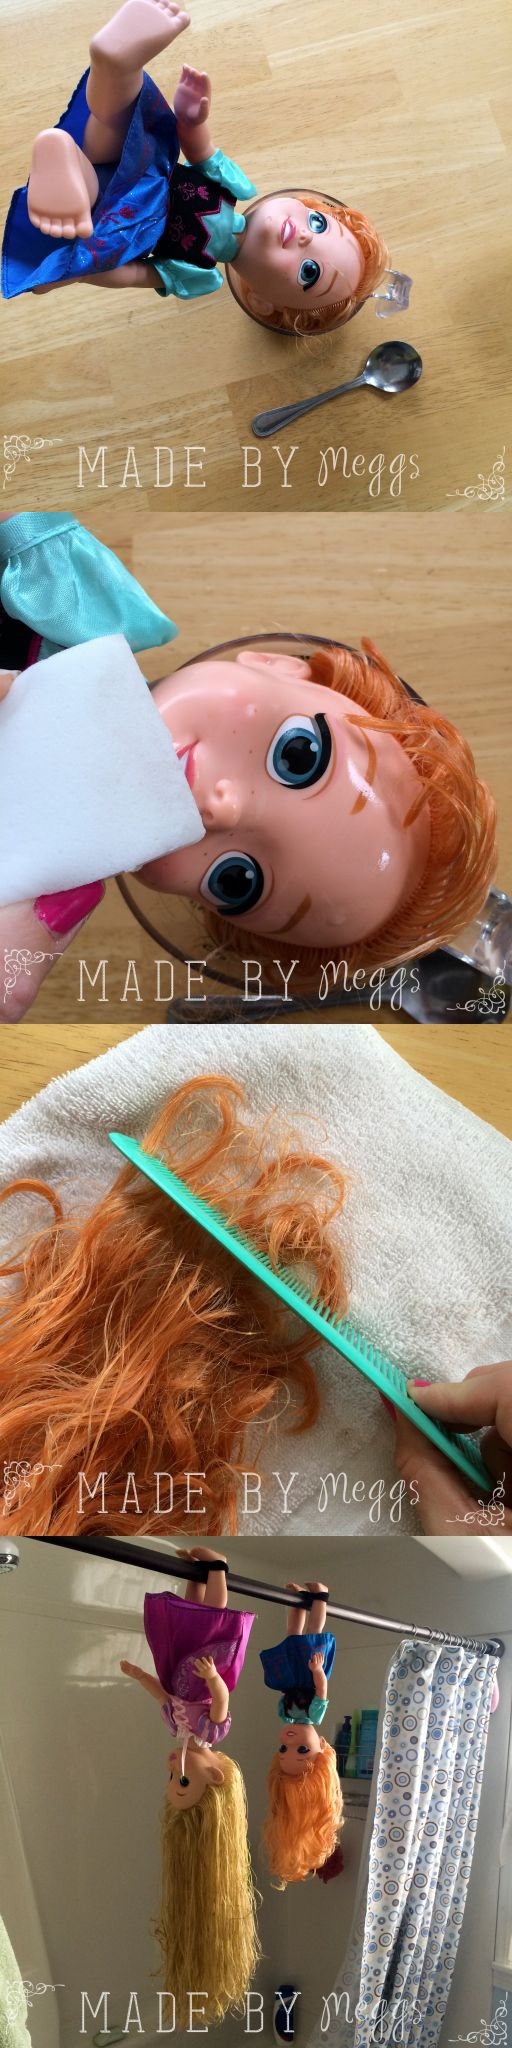 {DIY} Quick Fix for Tangled Doll Hair - More at MadeByMeggsDOTcom 12                                                                                                                                                      More